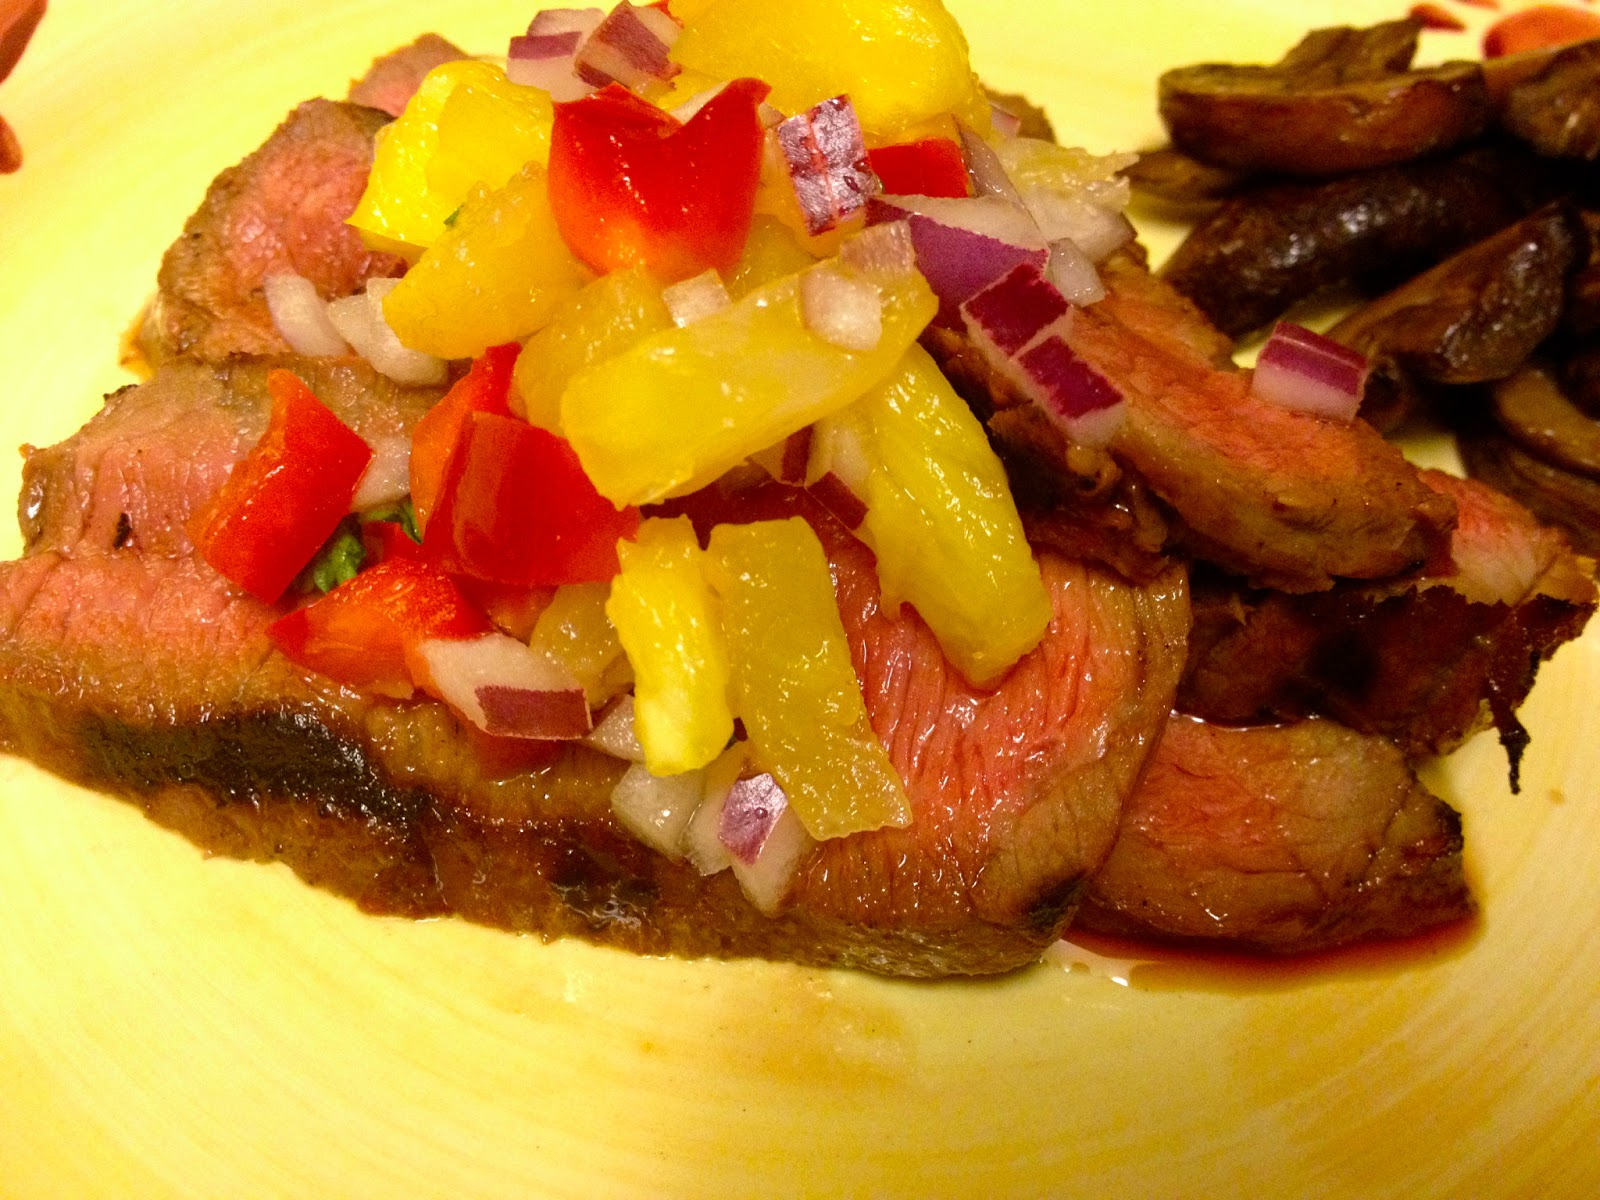 Grilled Steak with Pineapple Salsa